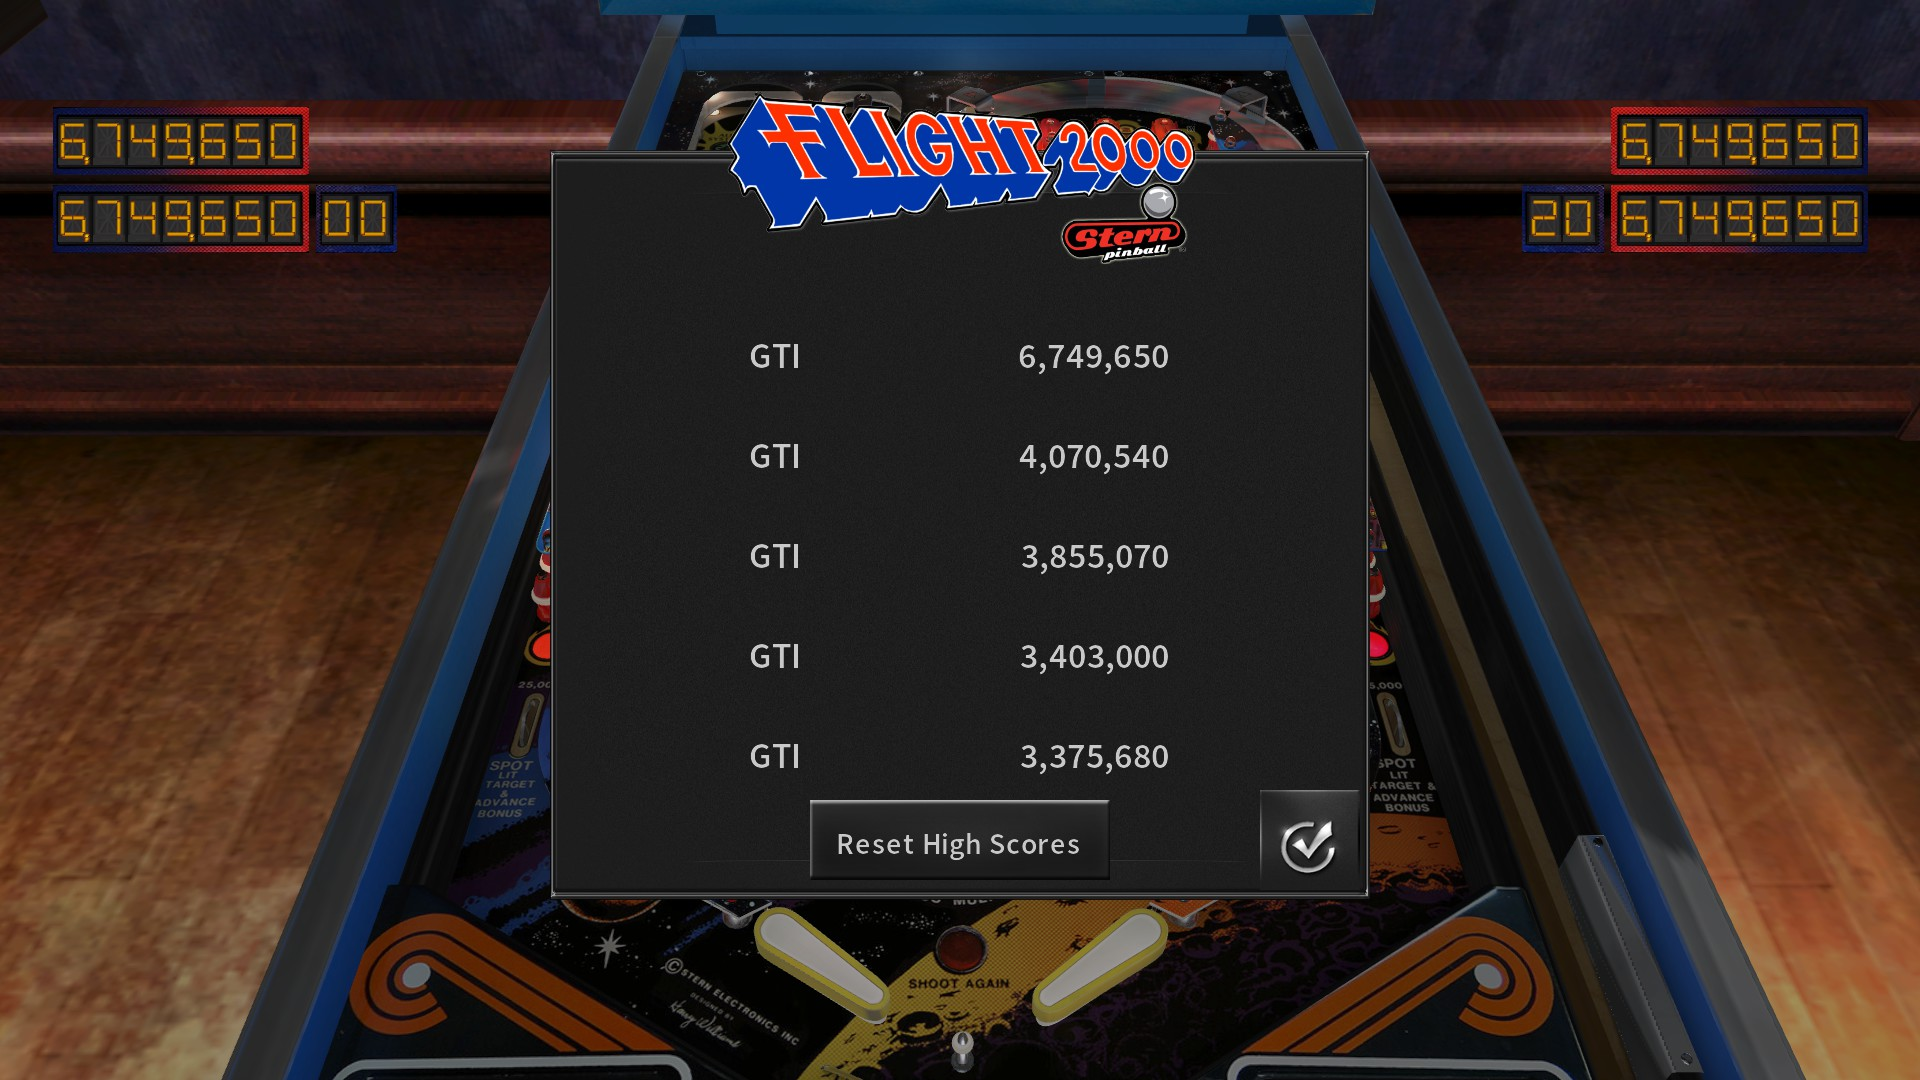 Pinball Arcade: Flight 2000 6,749,650 points